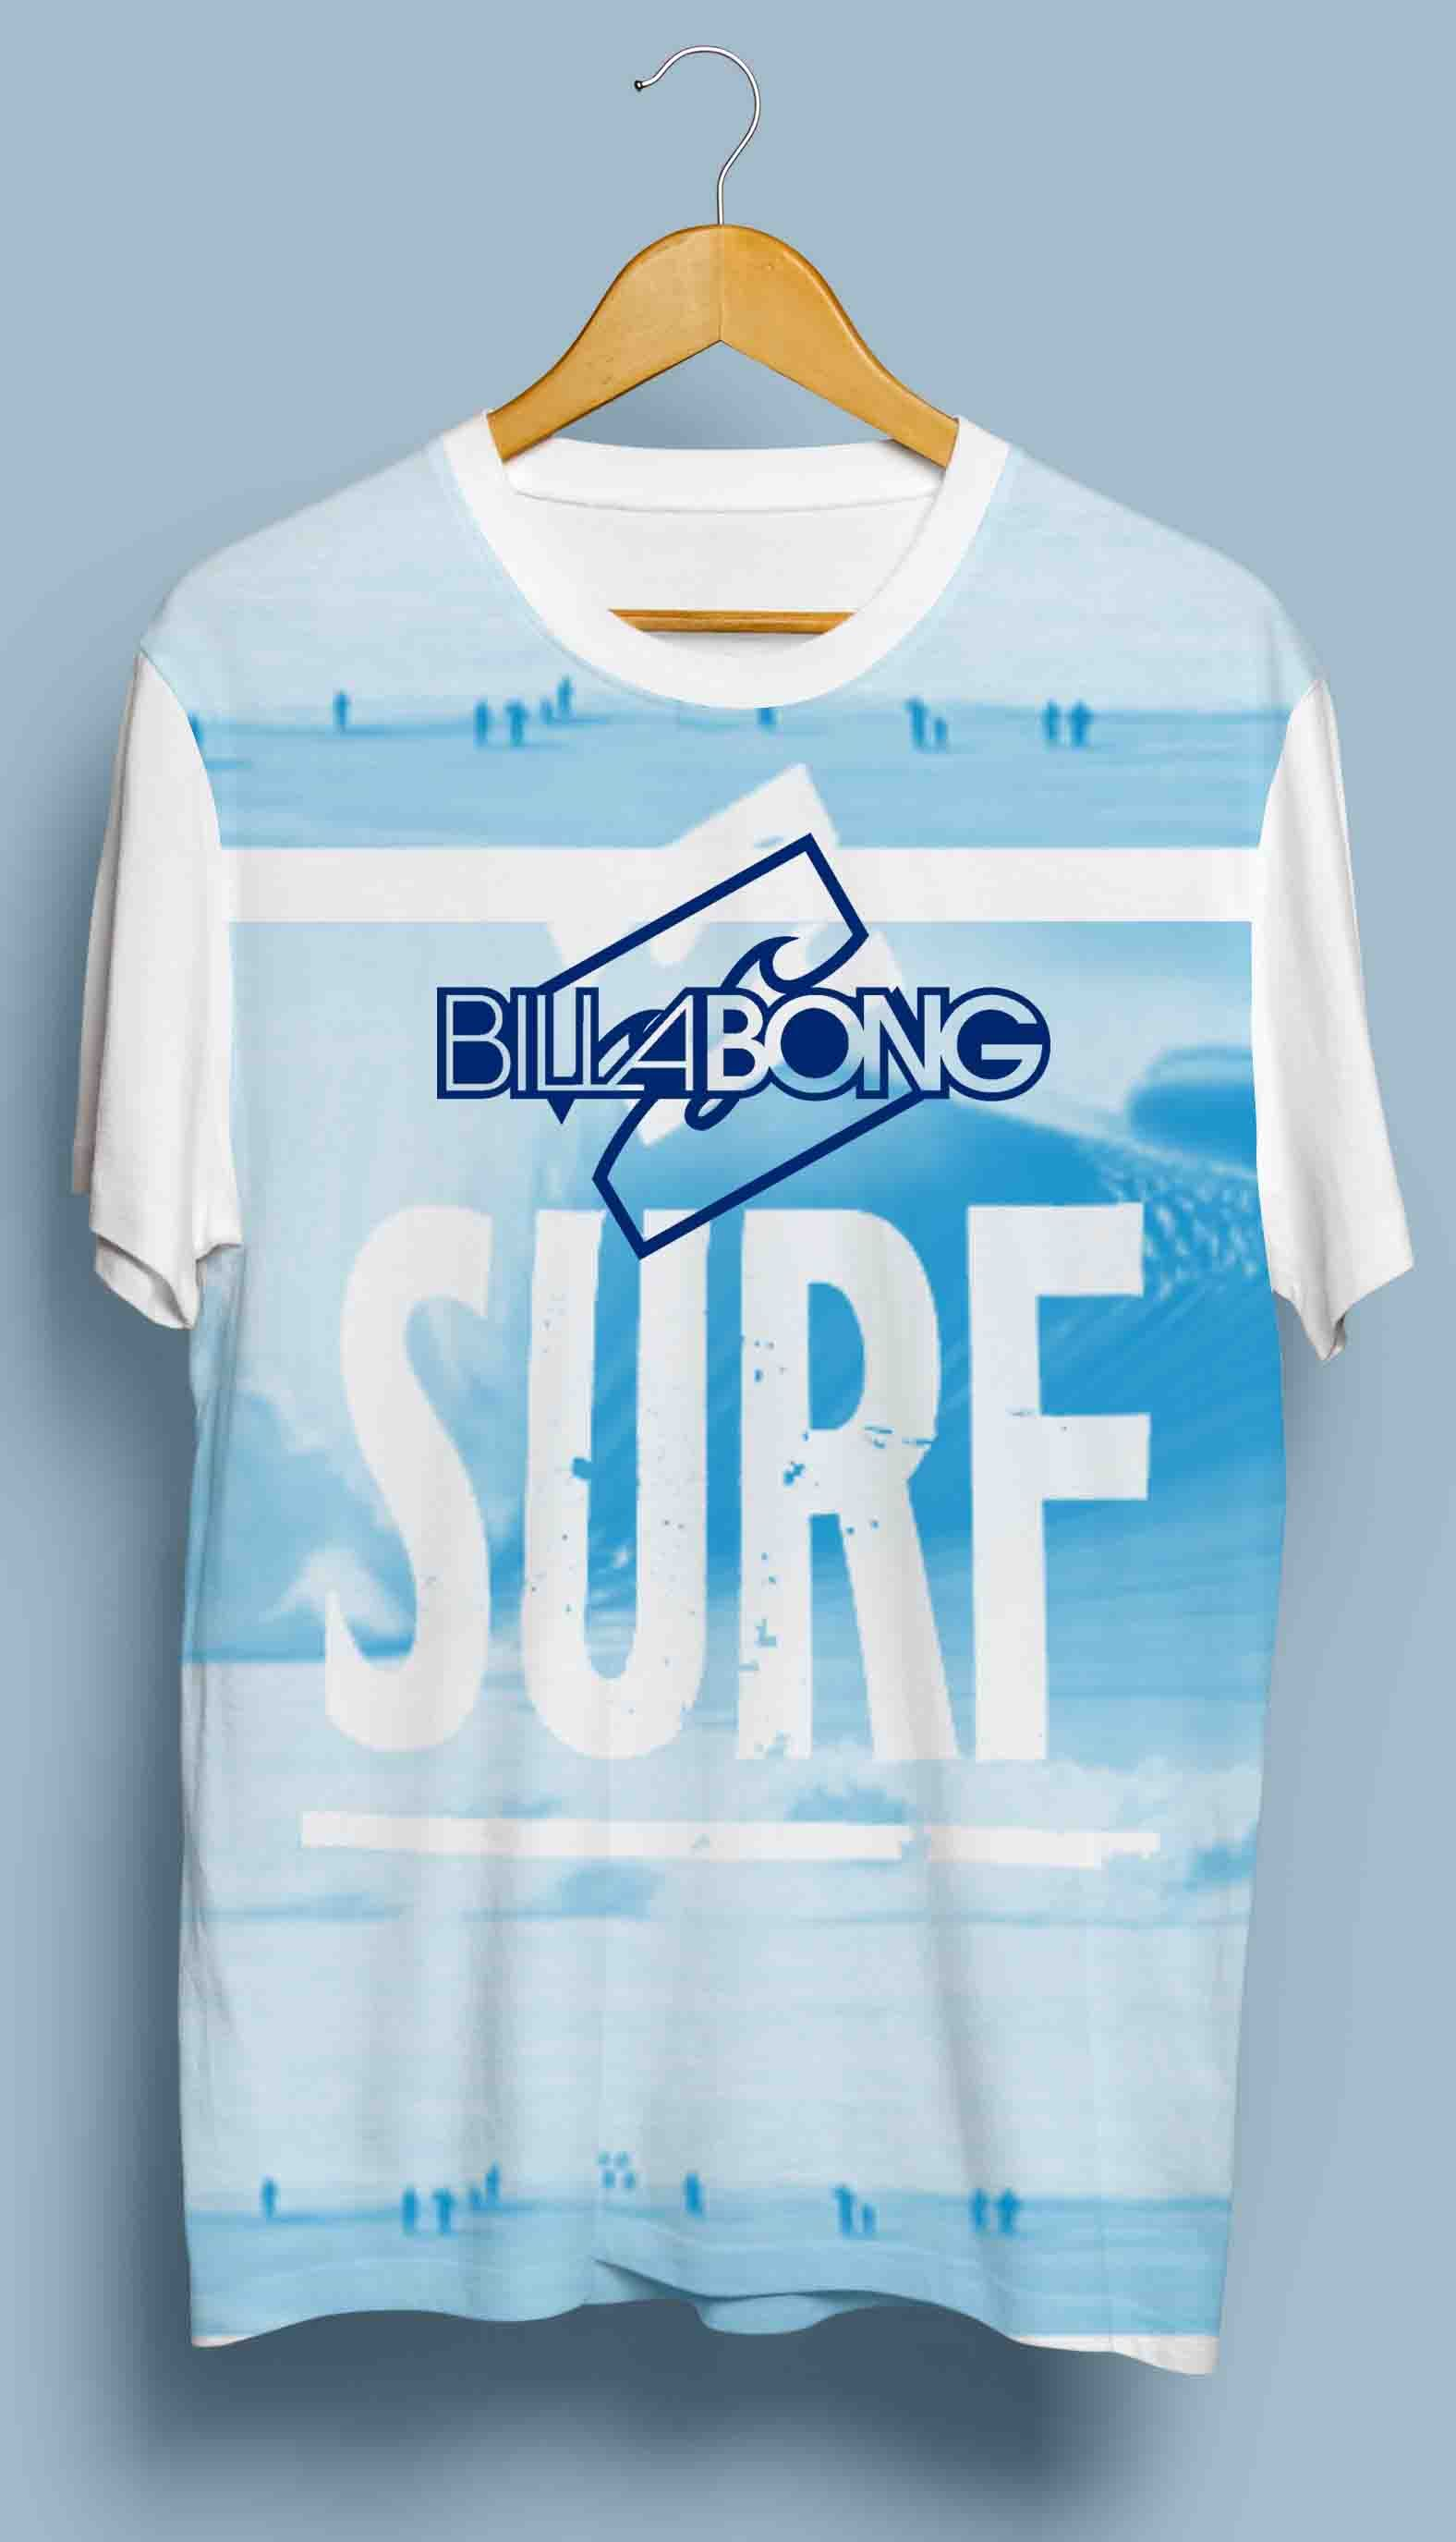 Quiksilver plain black t shirt - Tees Billabong Surf Tees Dc T Shirtdesign Dcshoecousa T